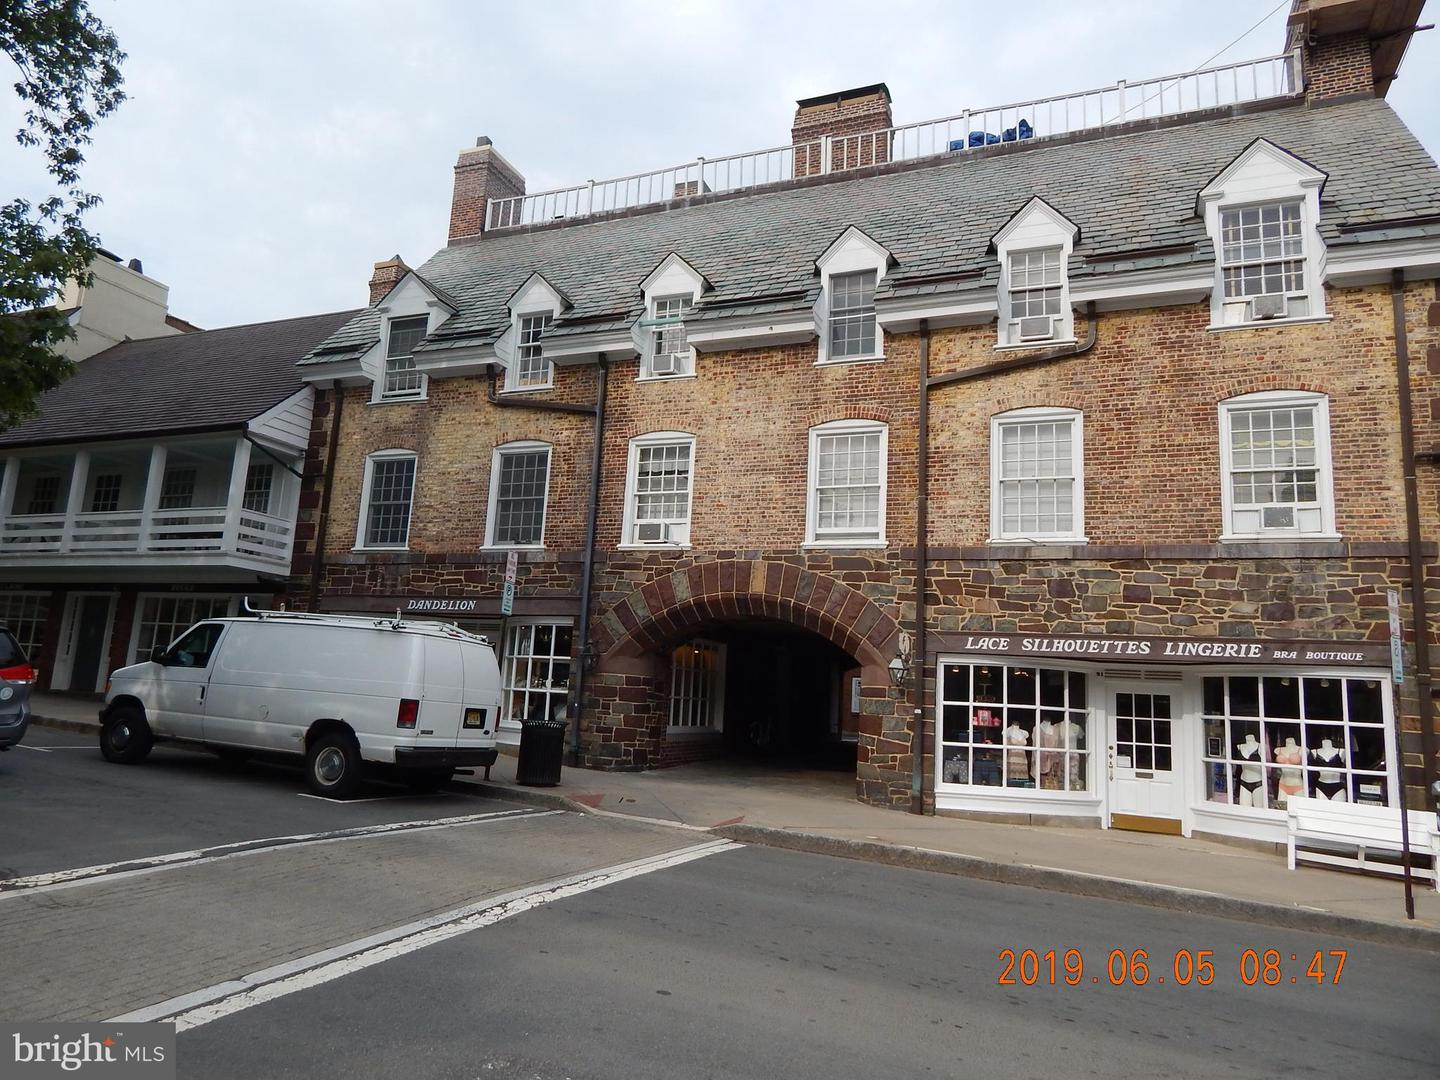 Property for Rent at Princeton, New Jersey 08542 United States